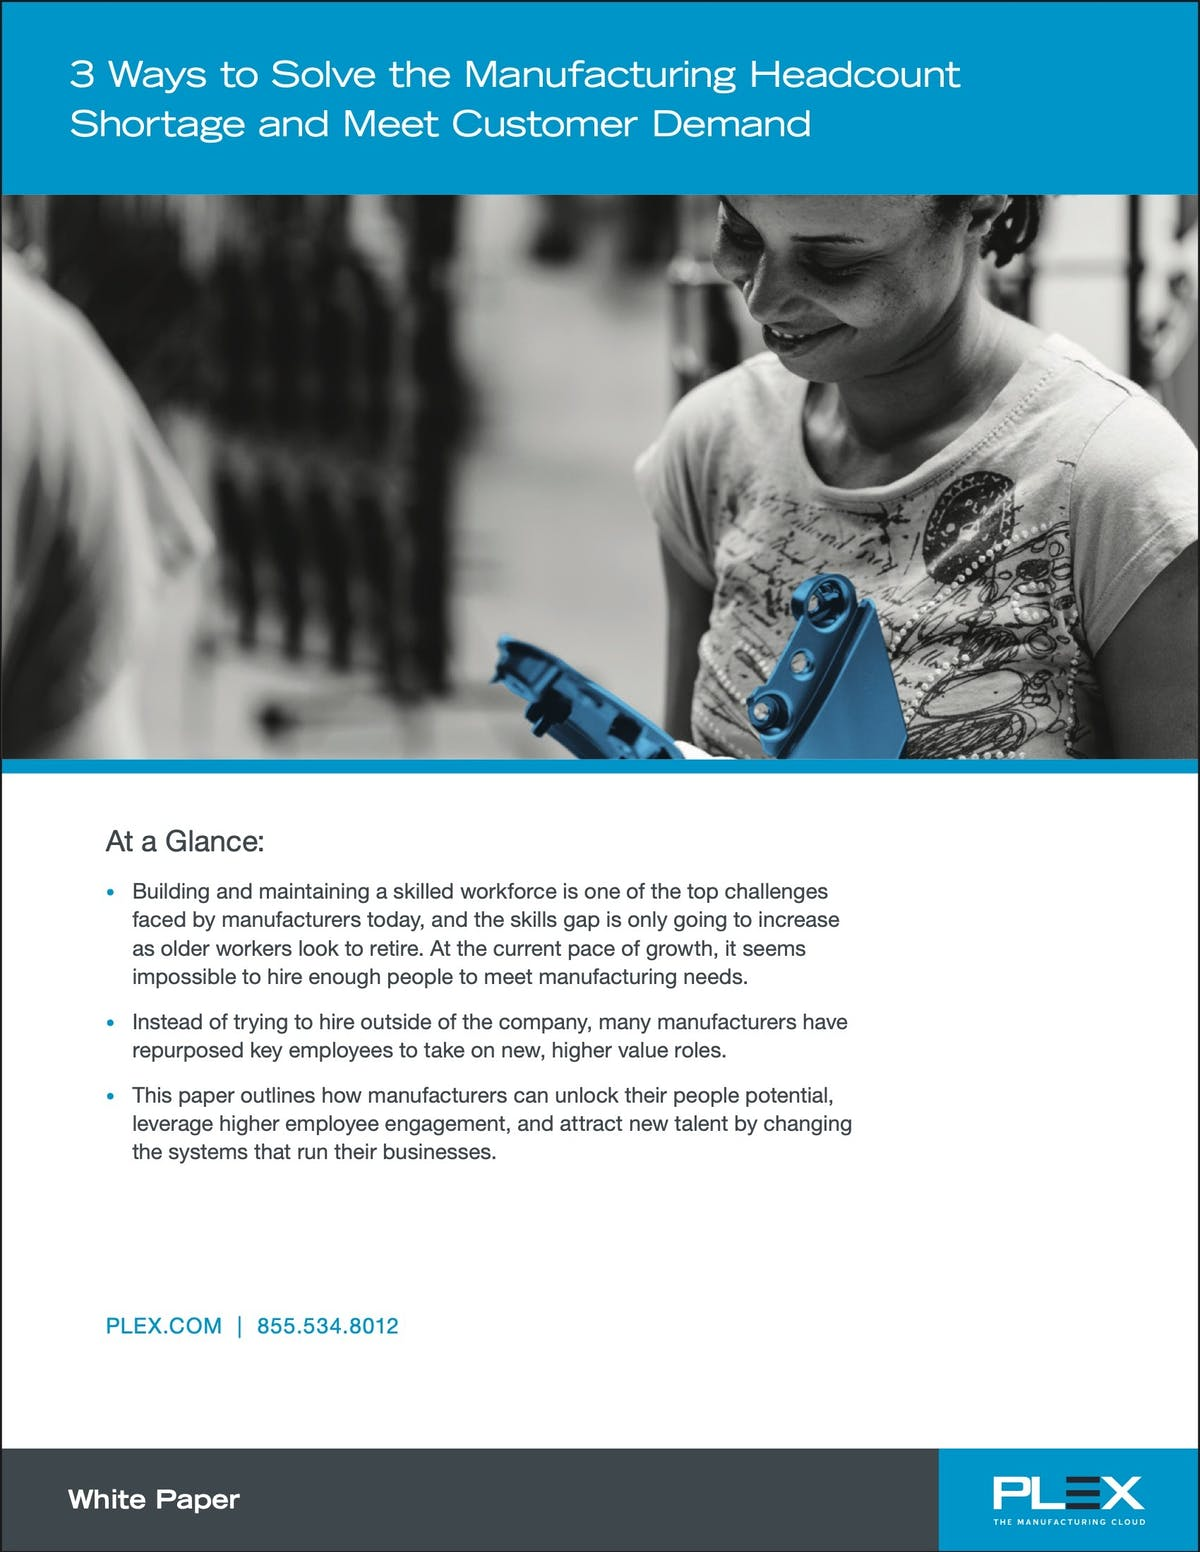 Plex Manufacturing Cloud White Paper - 3 Ways to Solve the Manufacturing Headcount Shortage and Meet Customer Demand